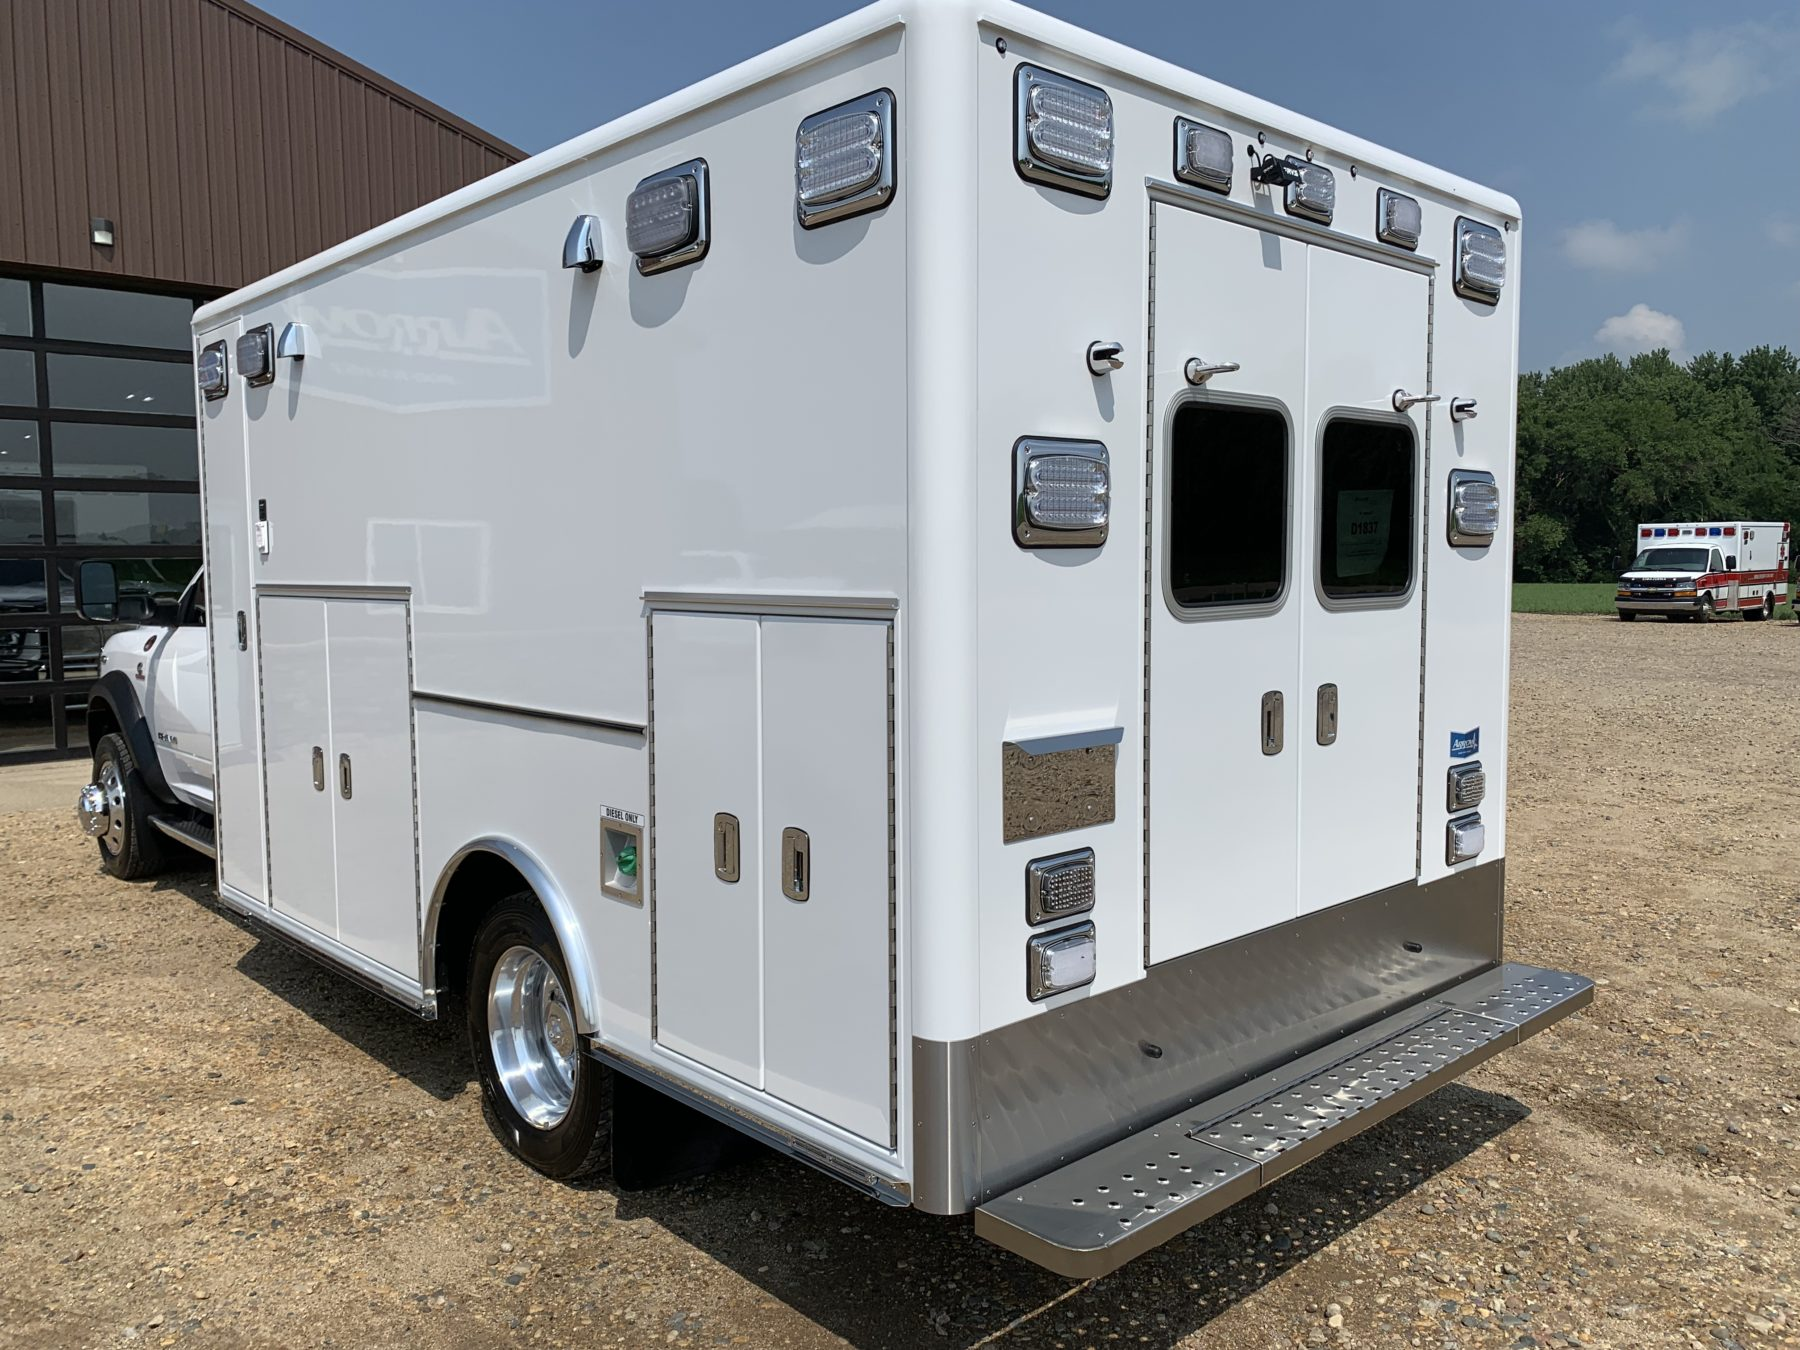 2021 Ram 4500 4x4 Heavy Duty Ambulance For Sale – Picture 9